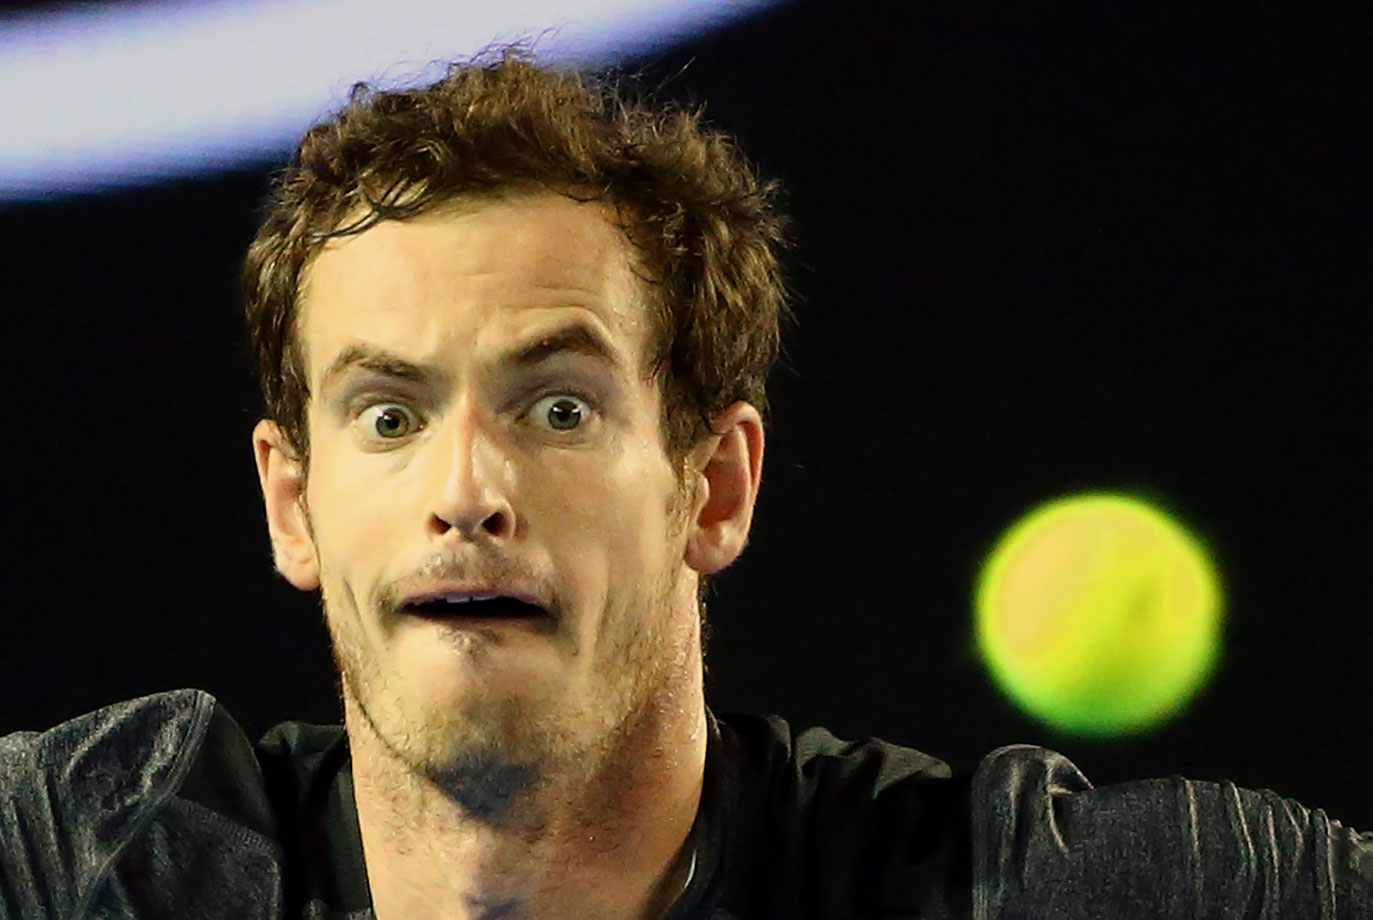 Andy Murray watches the ball during his match against Bernard Tomic at the Australian Open in Melbourne.